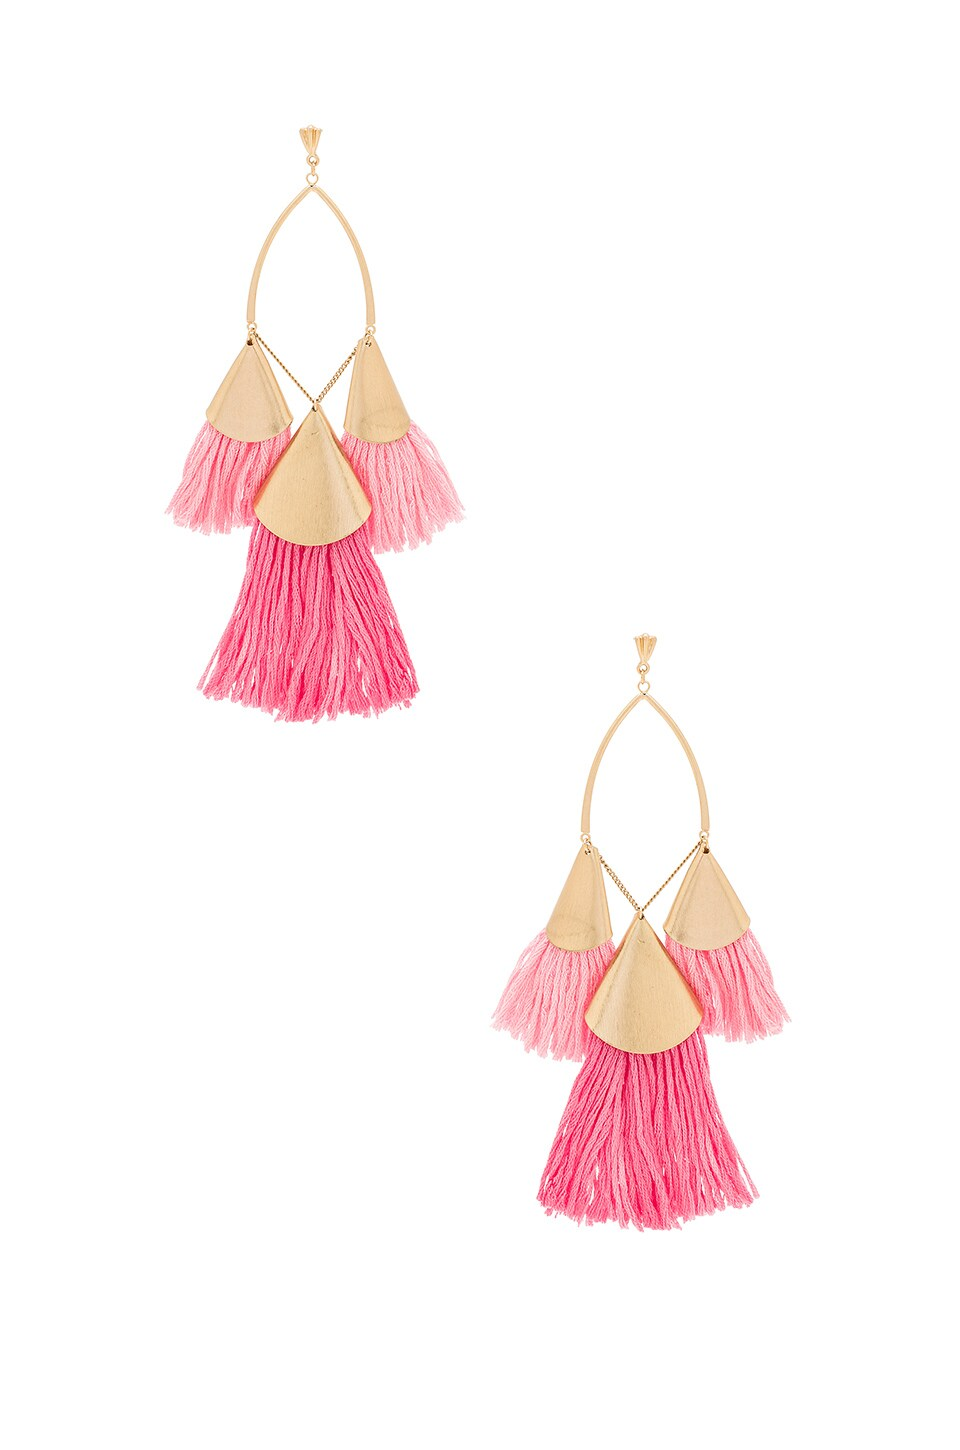 Ettika Tri Tassel Earrings in Pink